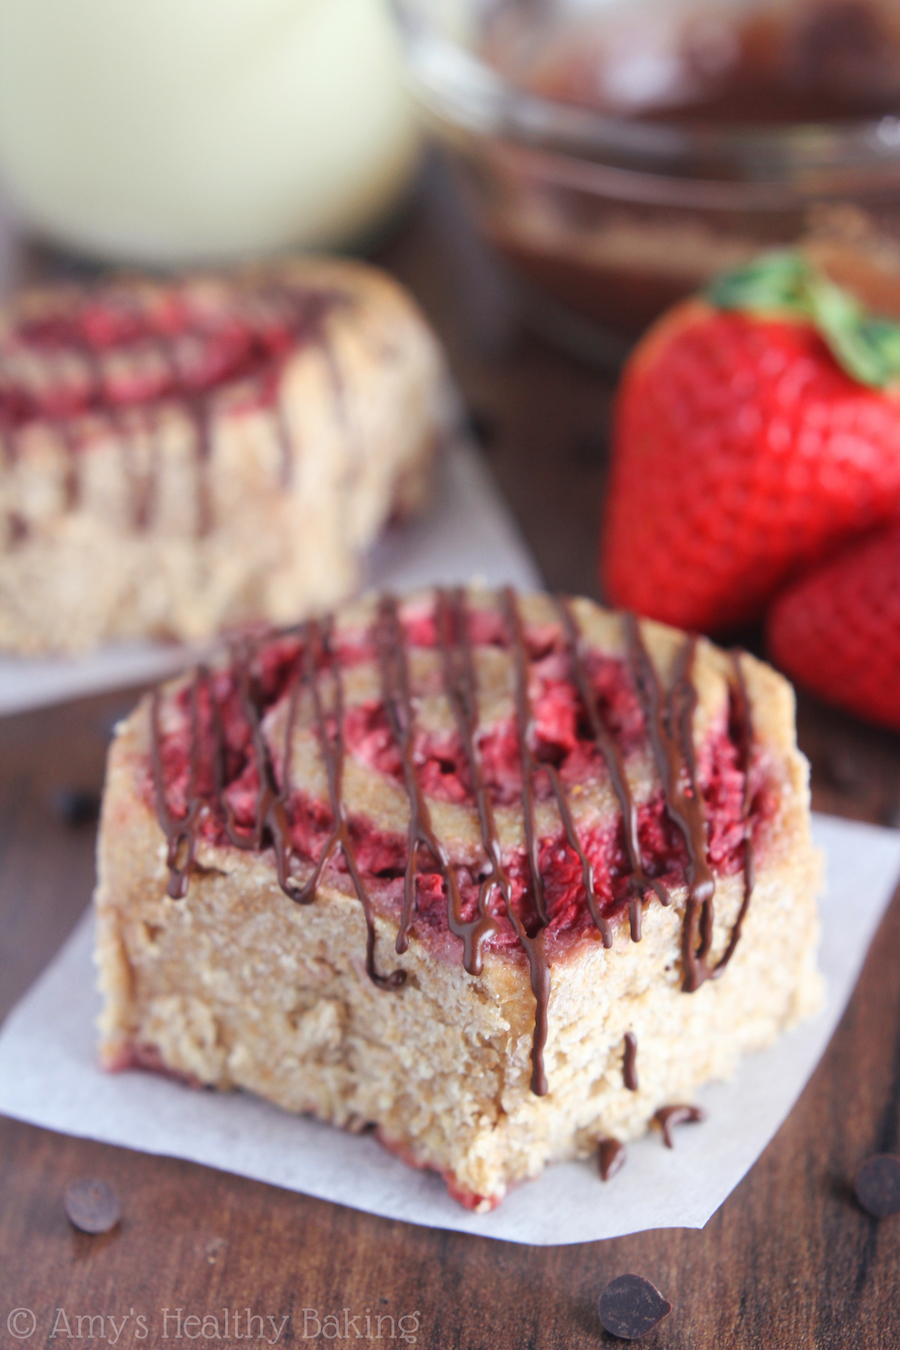 Strawberry Sweet Rolls with Dark Chocolate Drizzle -- like eating chocolate-dipped strawberries as a healthy breakfast!